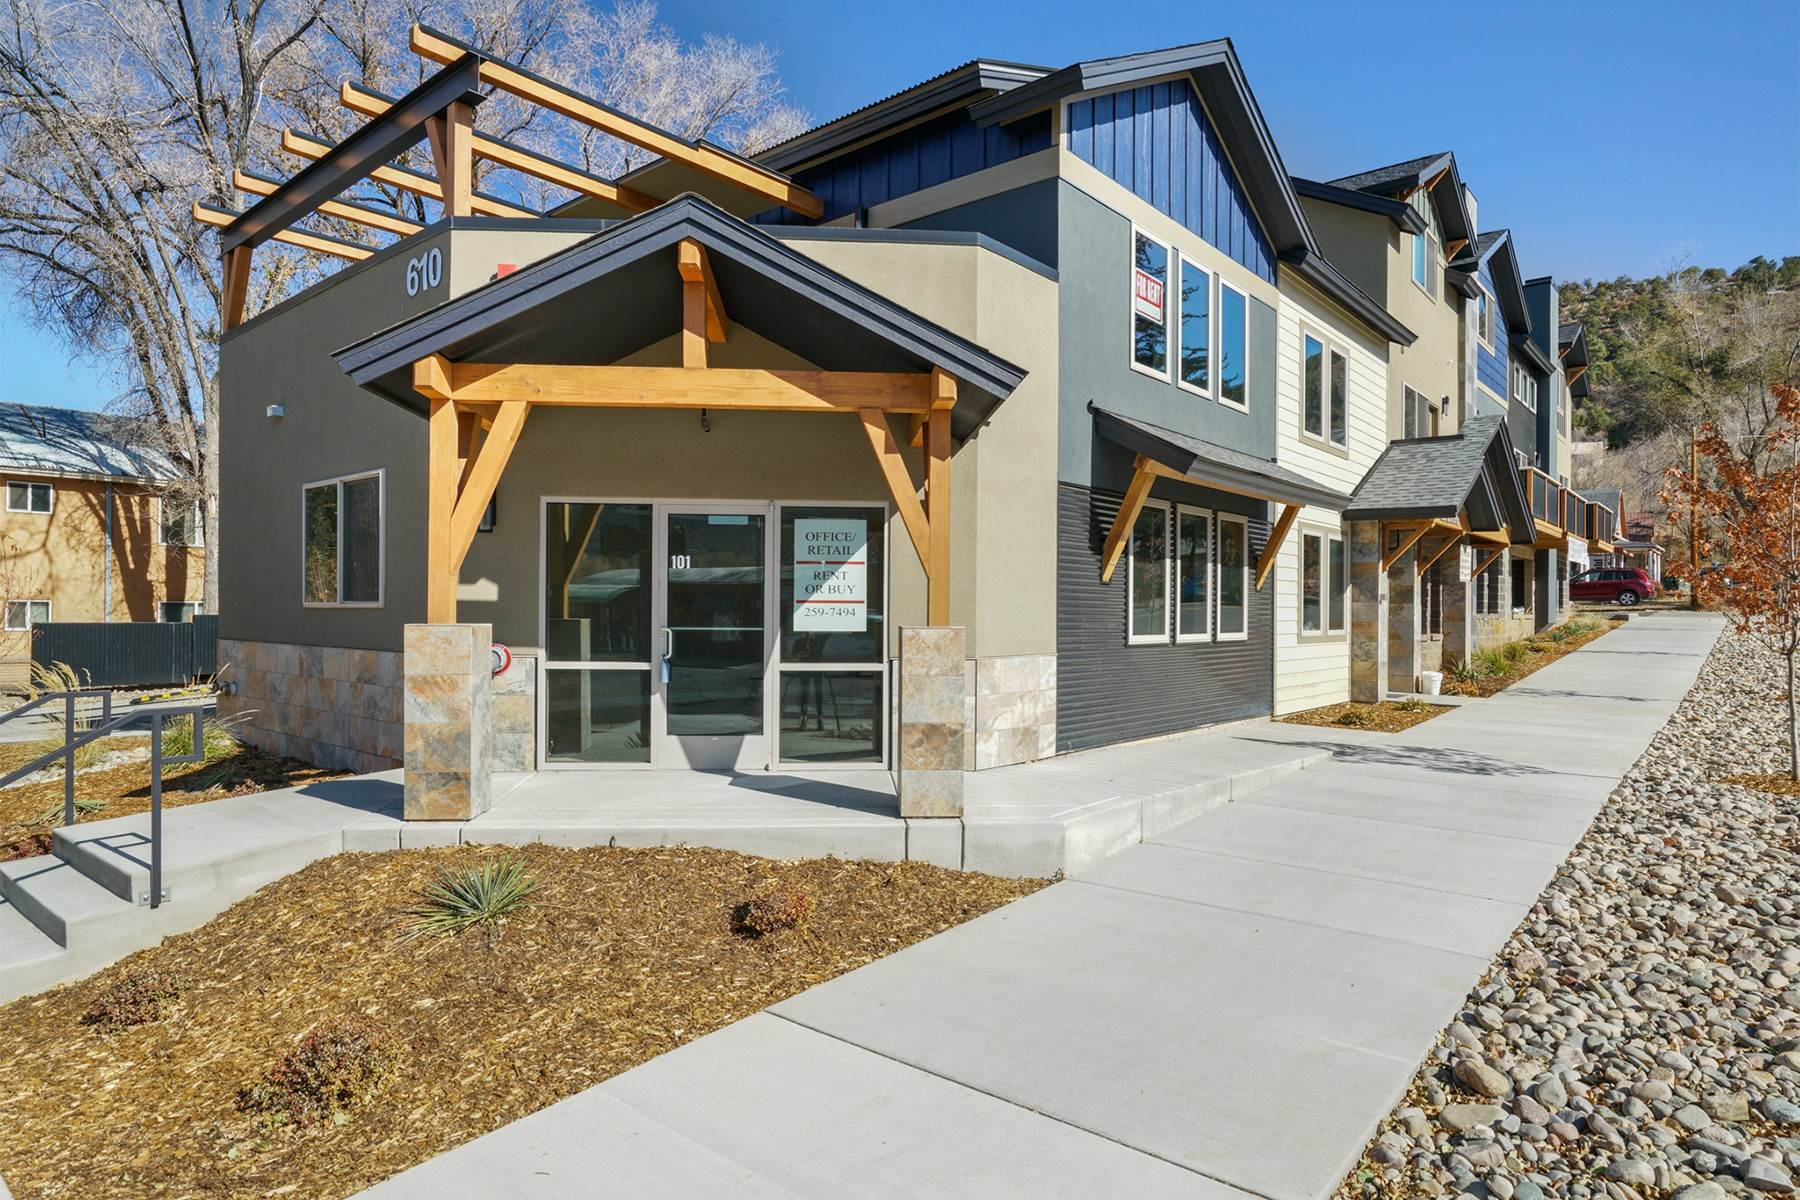 Commercial for Sale at 610 E 8th Avenue #202 Durango, Colorado 81301 United States